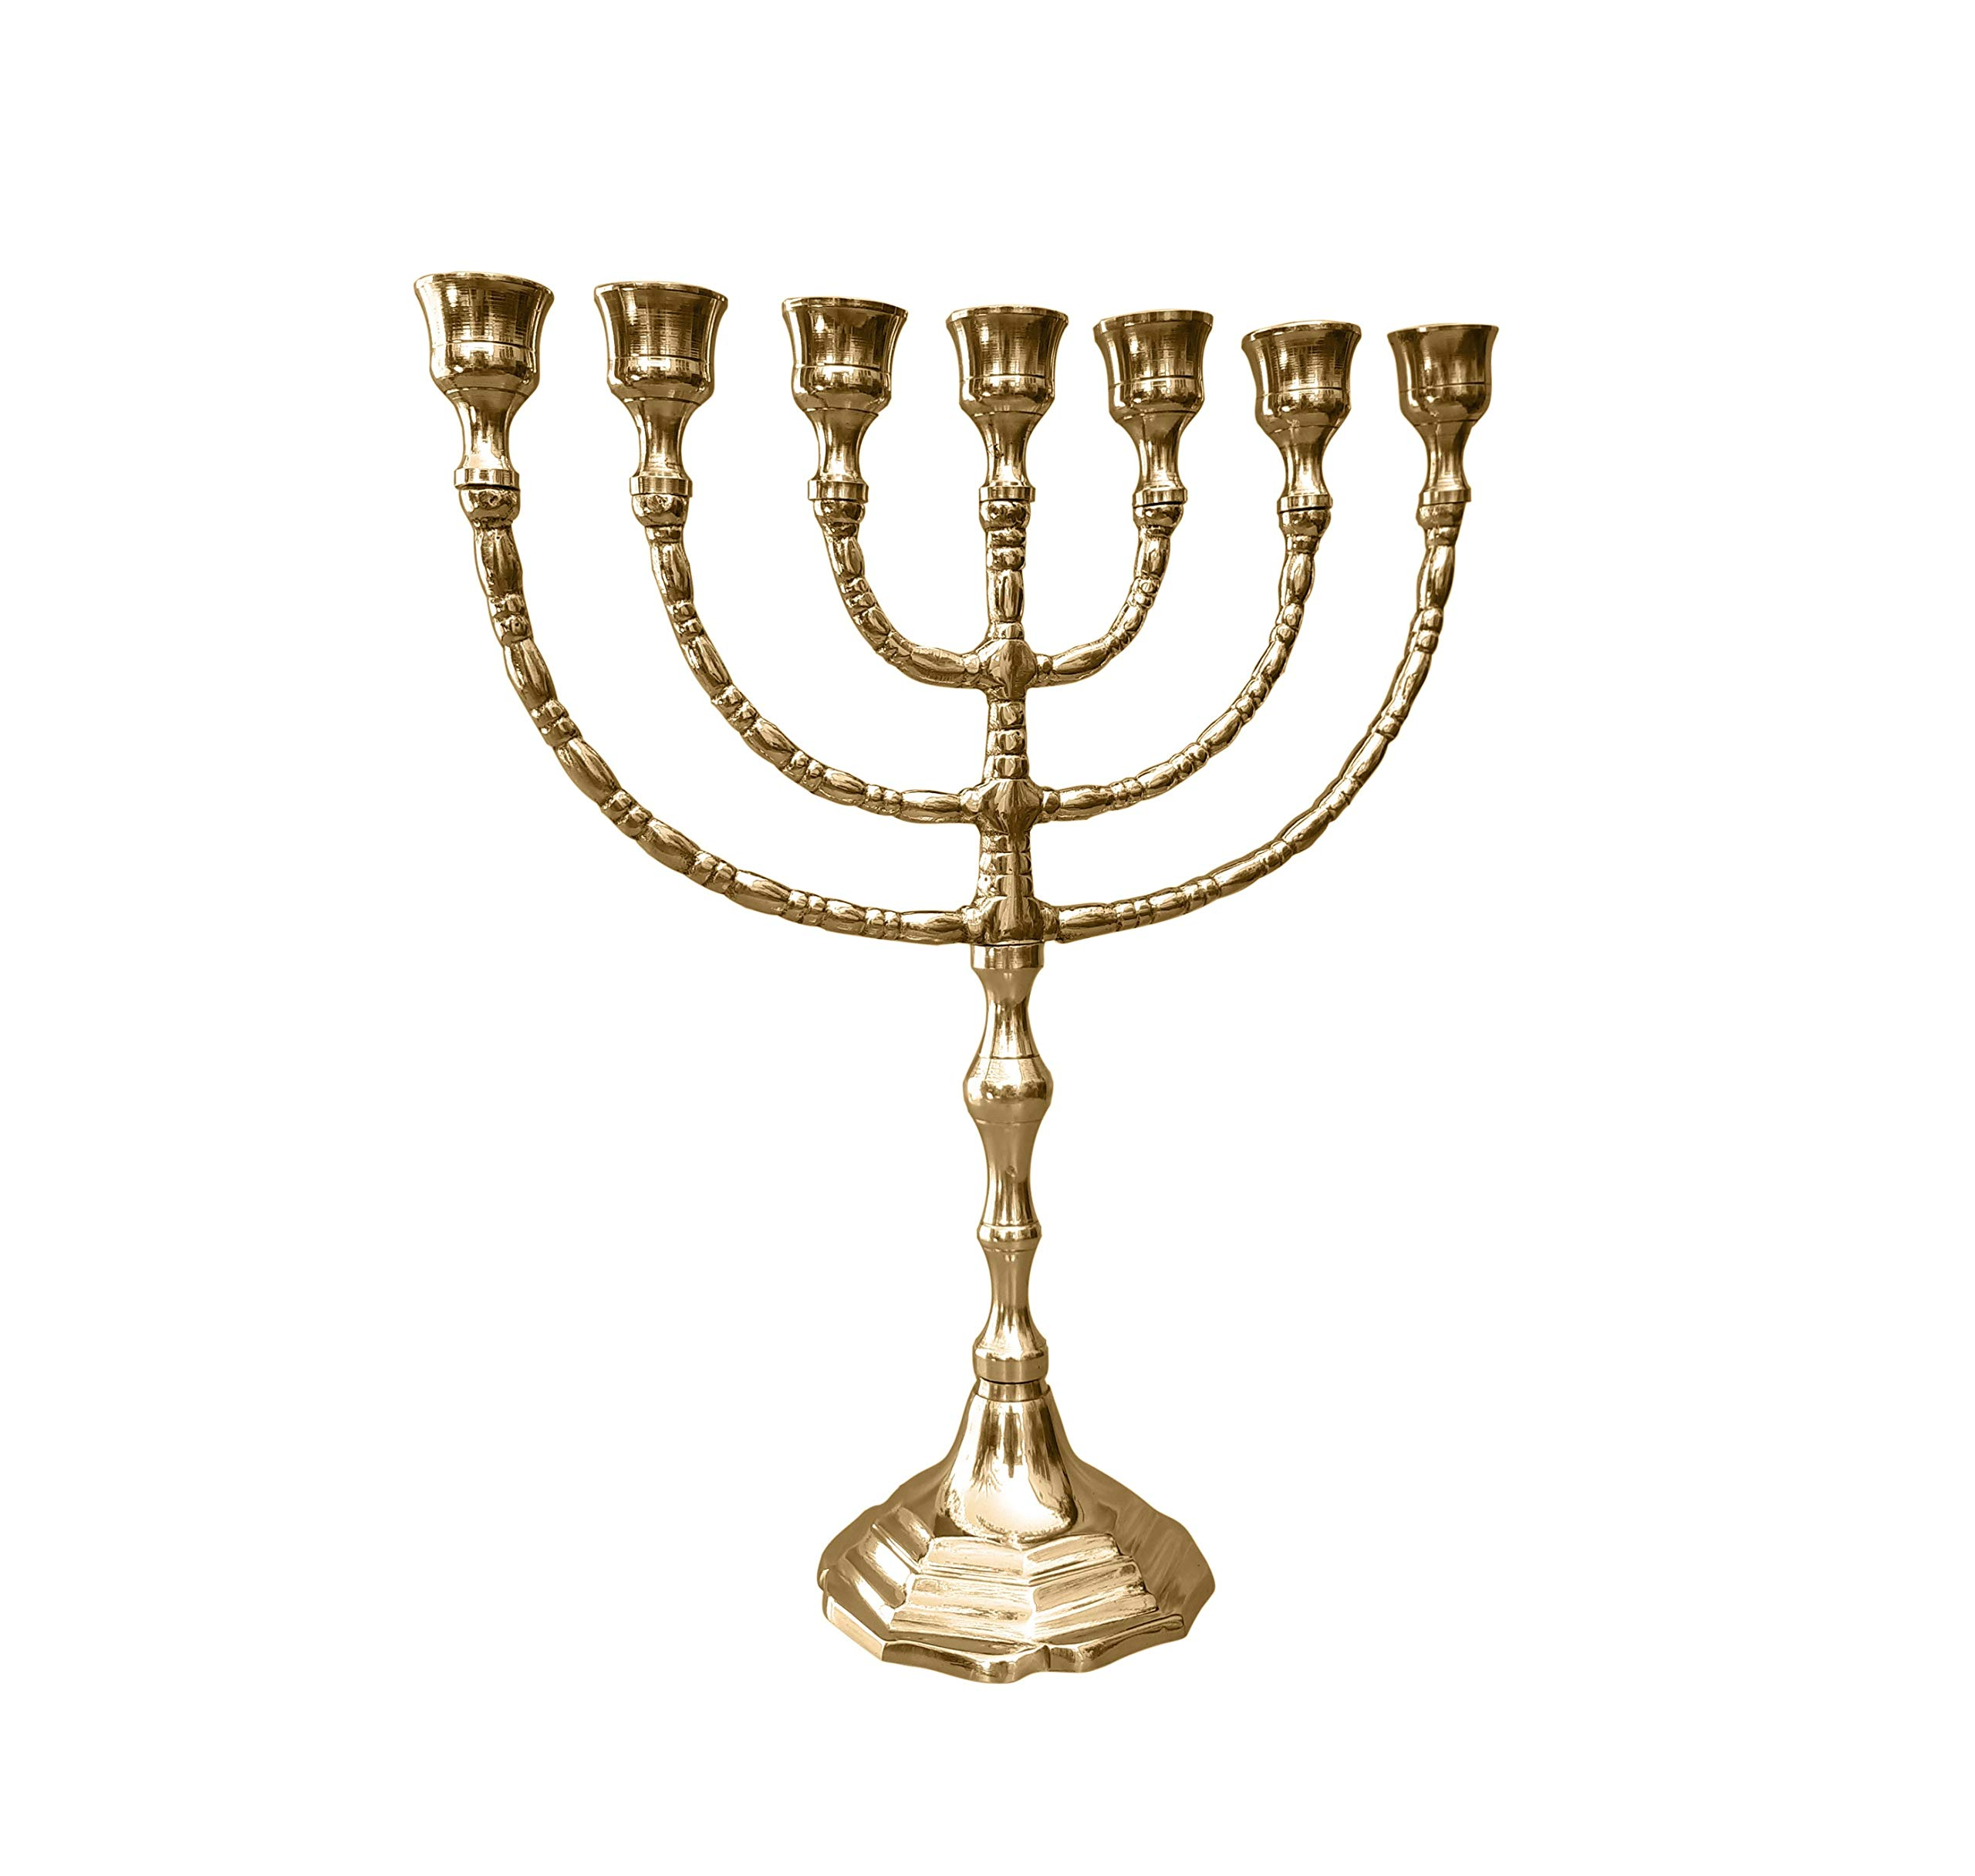 7 Branches Brass Menorah - 12 Inches Hight by Amen Judaica